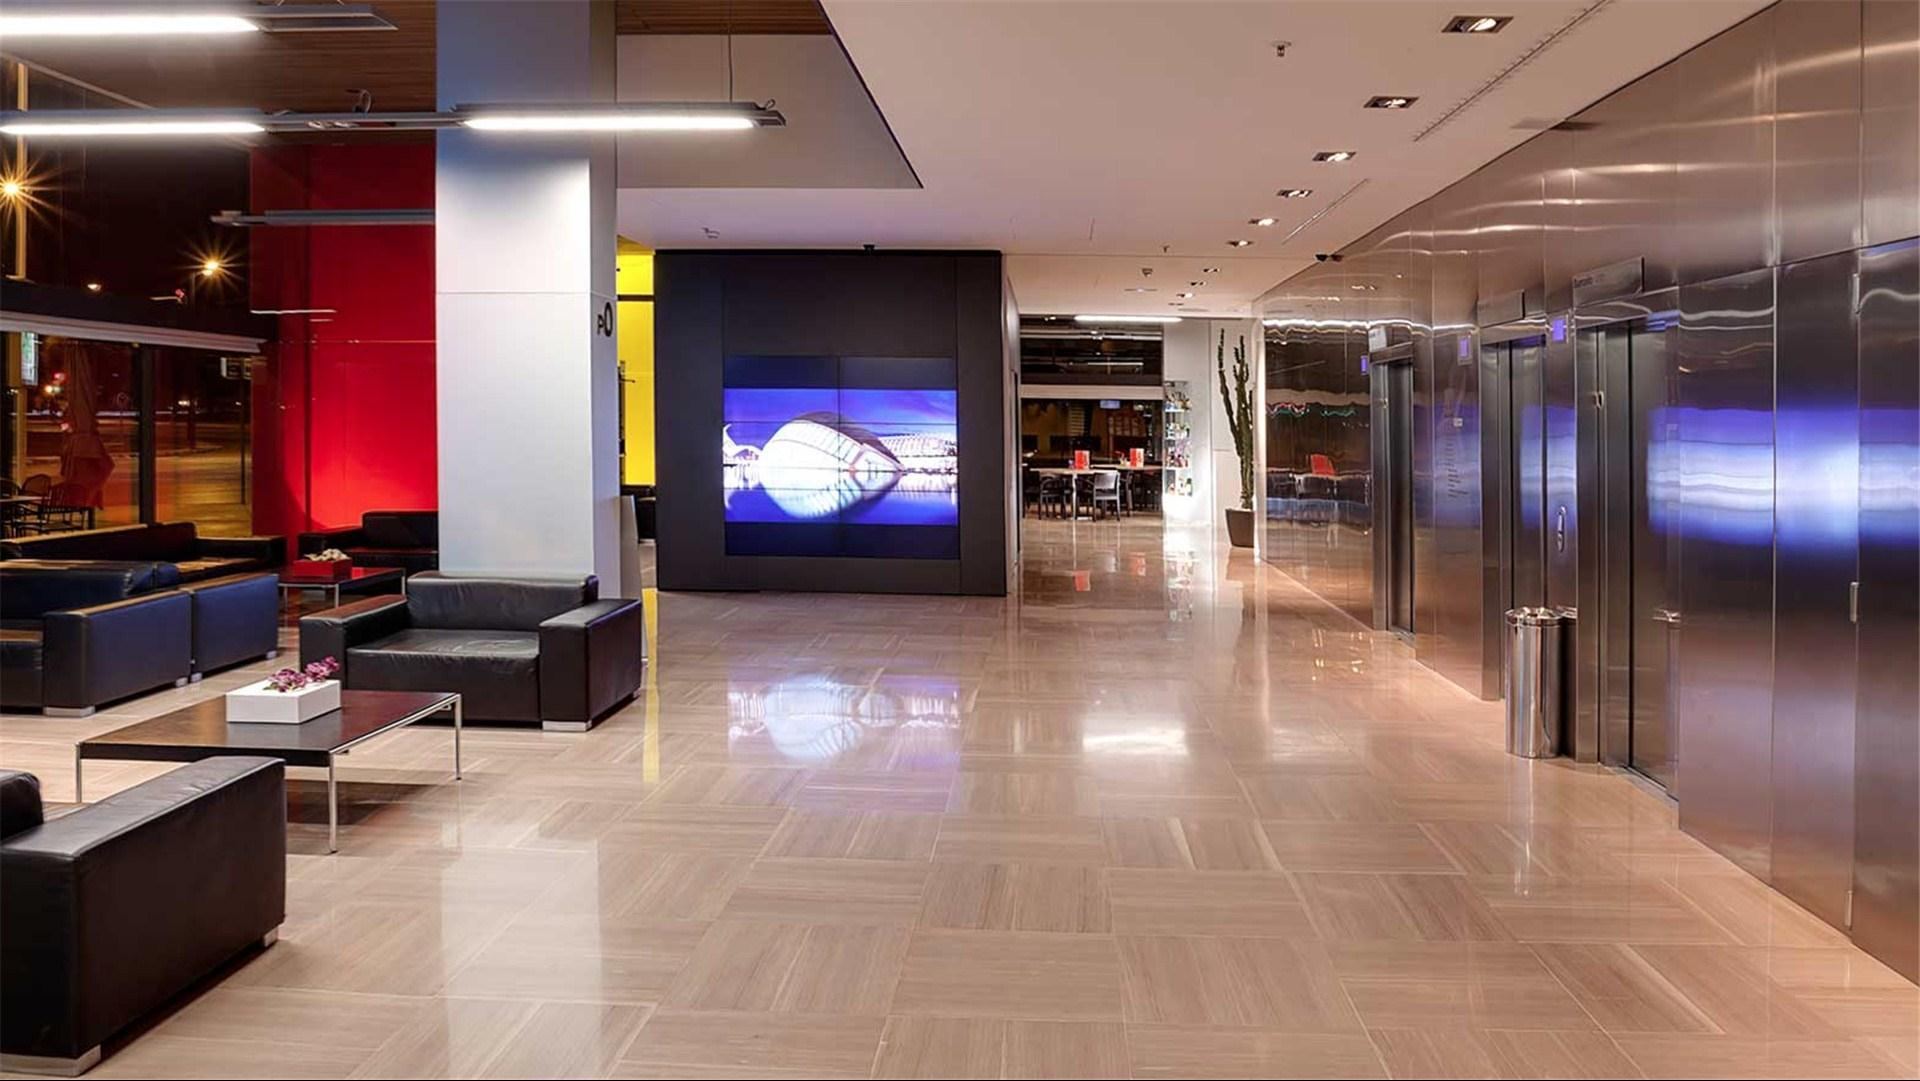 Meetings And Events At Barcelo Valencia Valencia Es